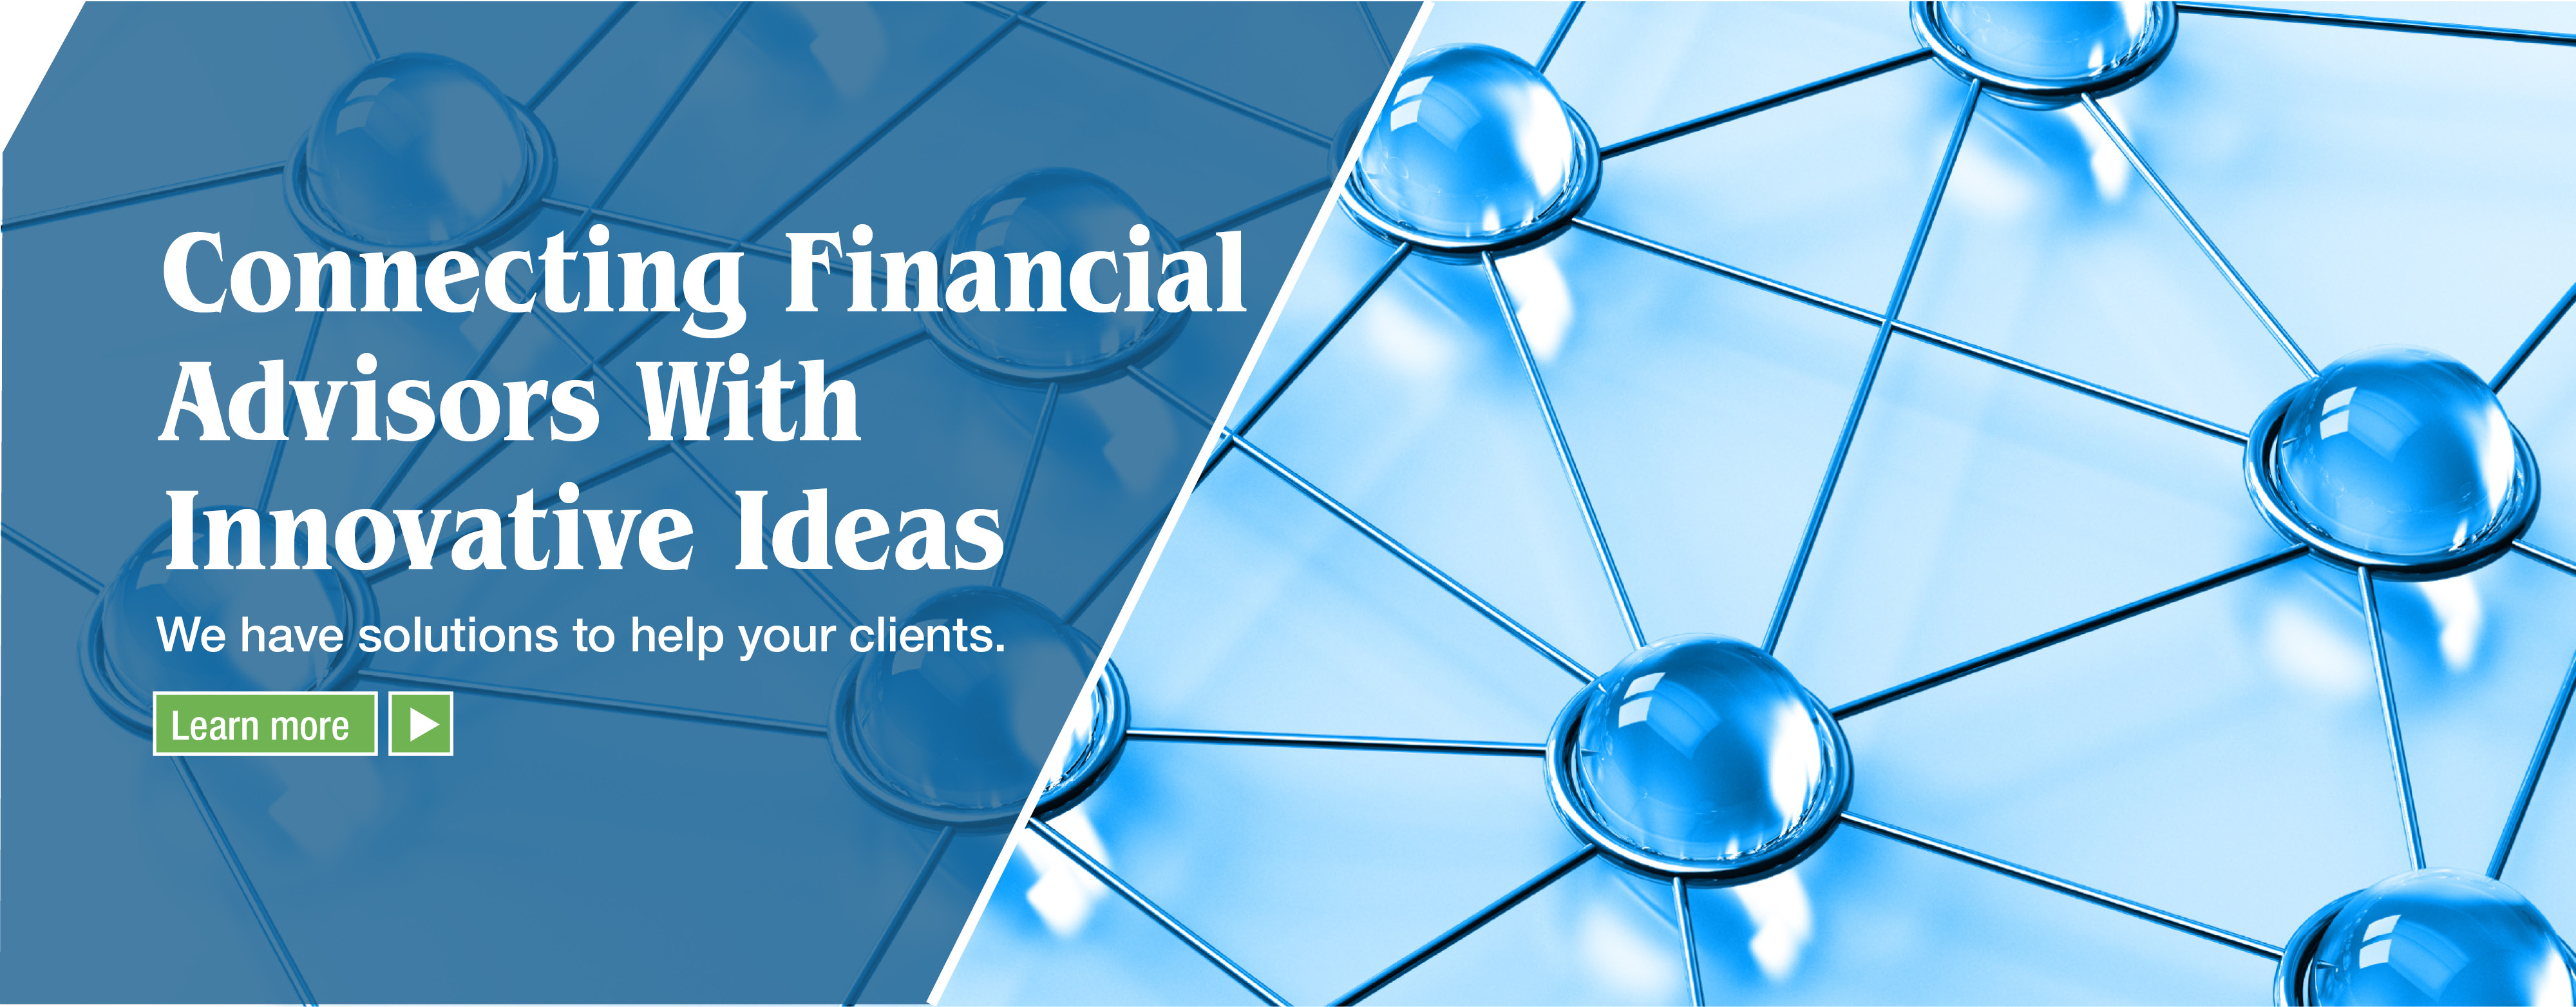 Connecting Financial Advisors with Innovative Ideas: We have solutions to help your clients. Find out more.